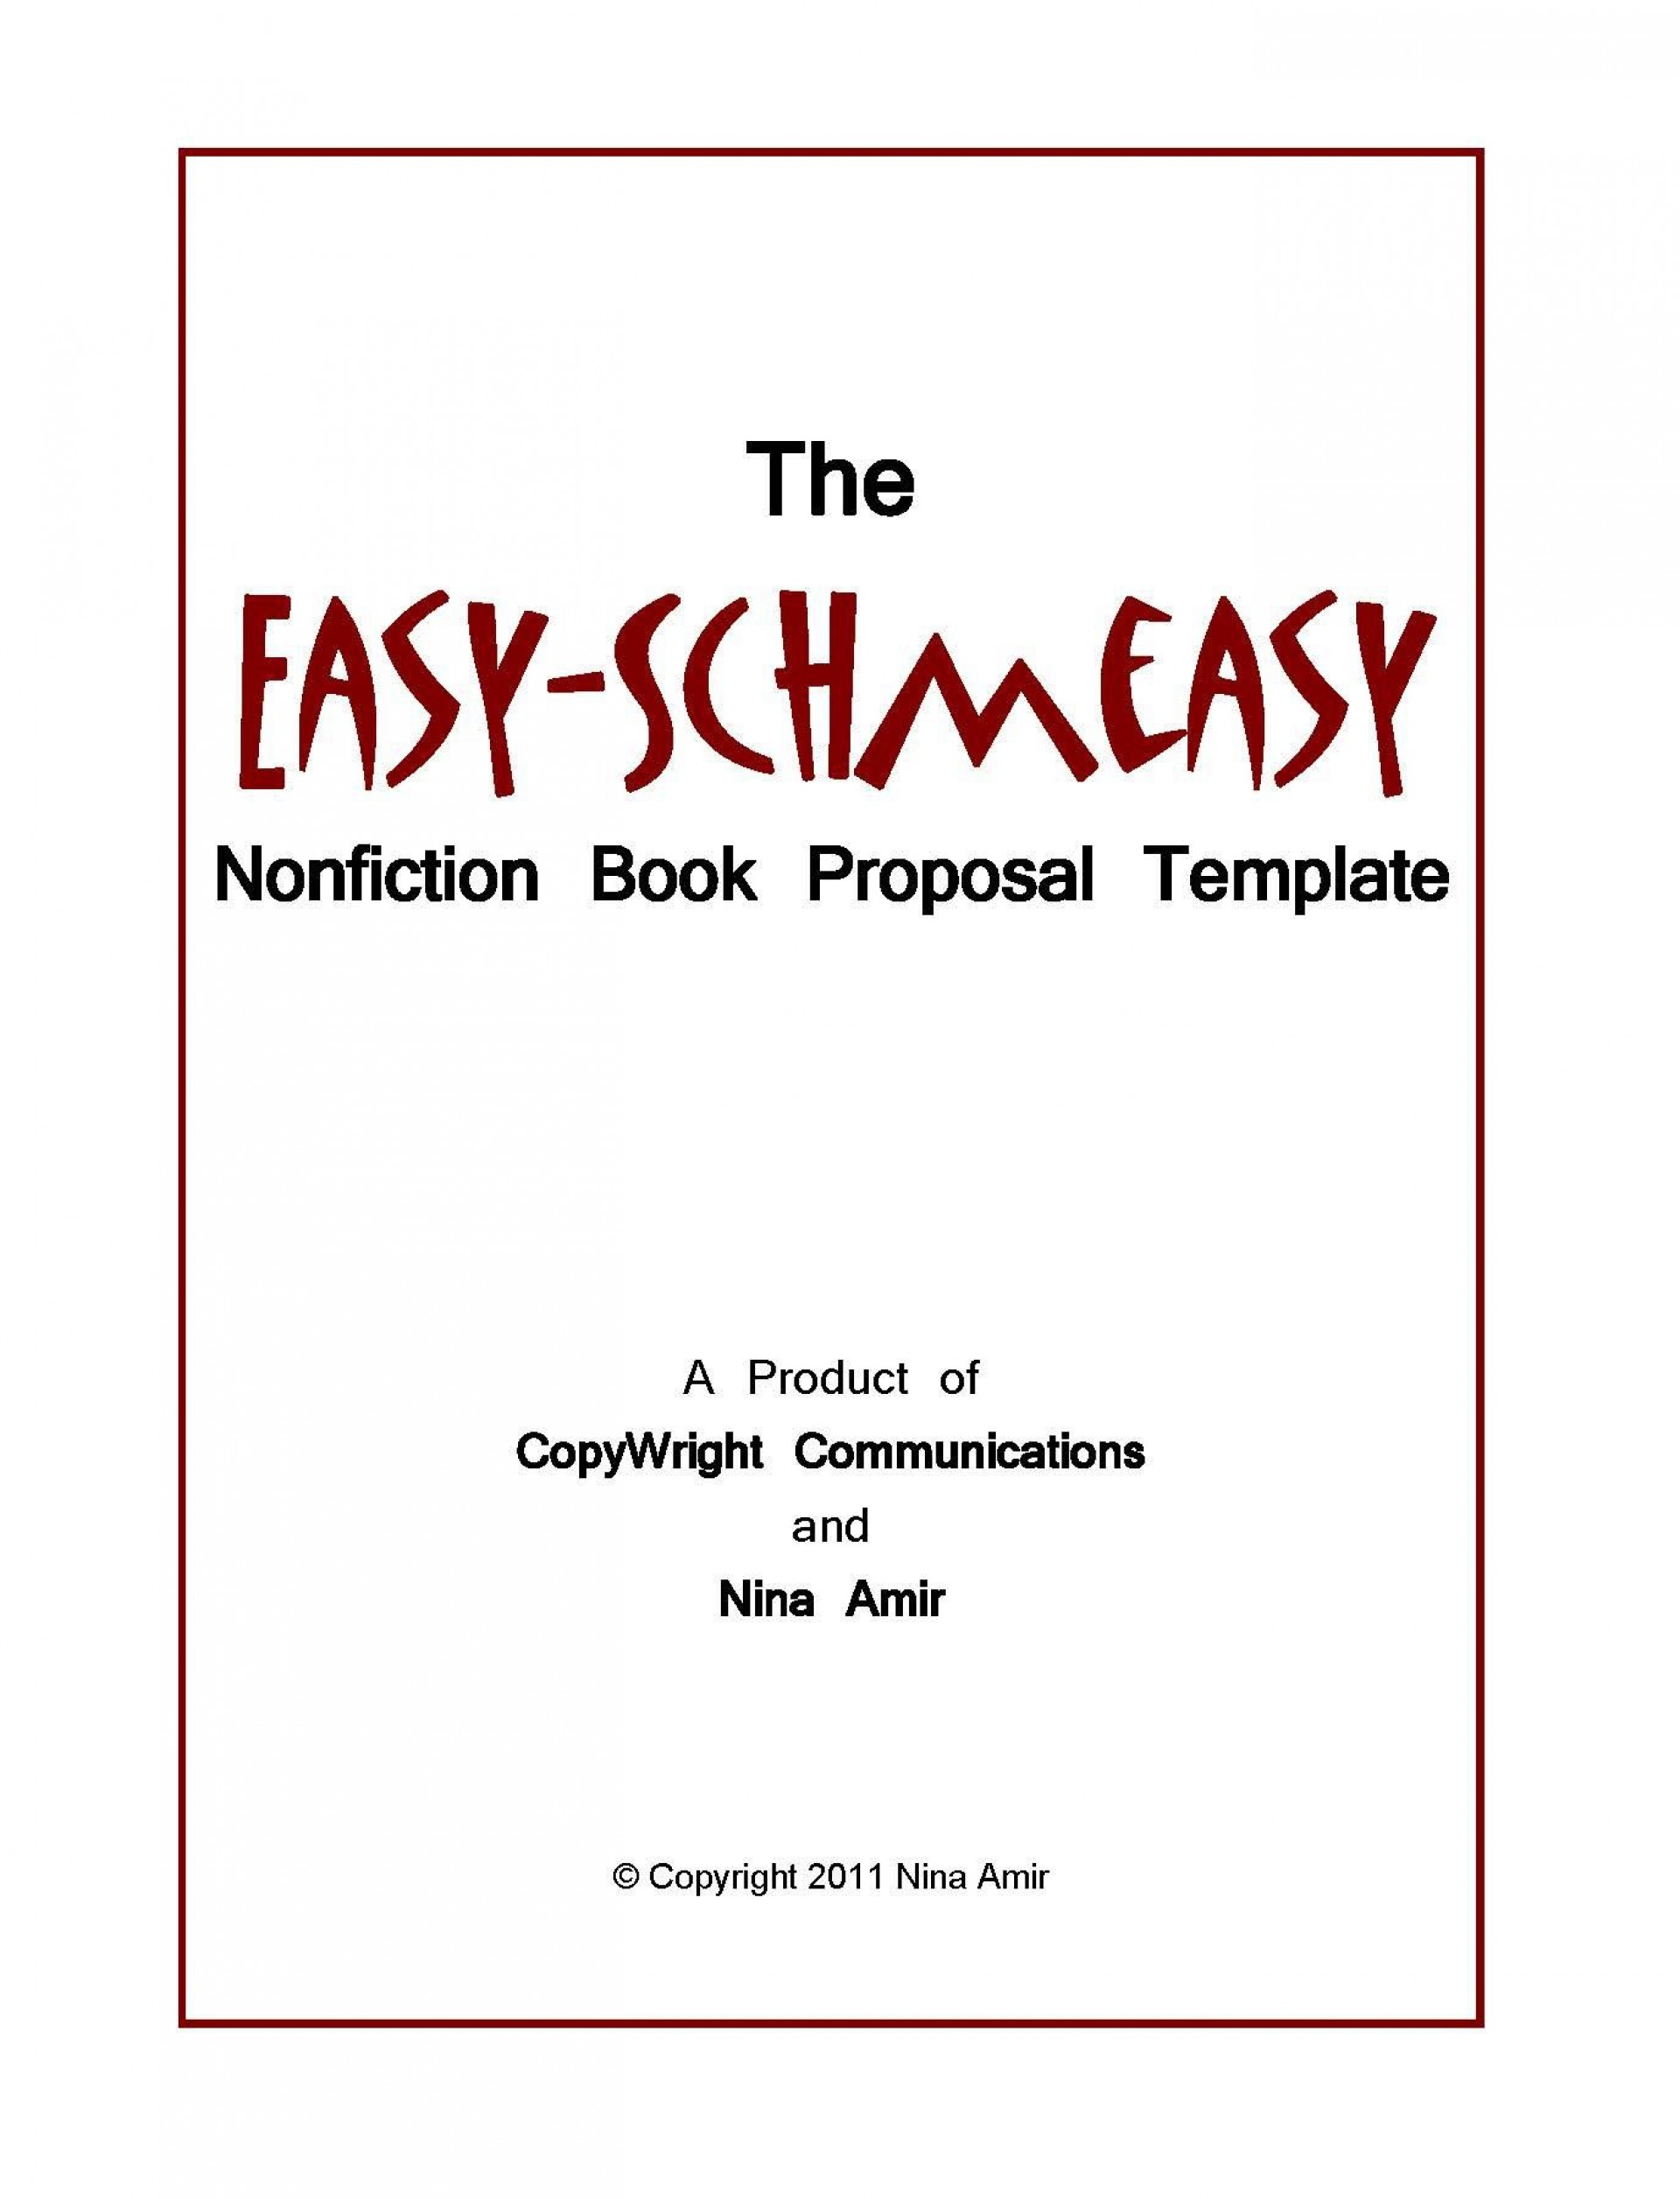 005 Unusual Nonfiction Book Proposal Template Sample  Example1920